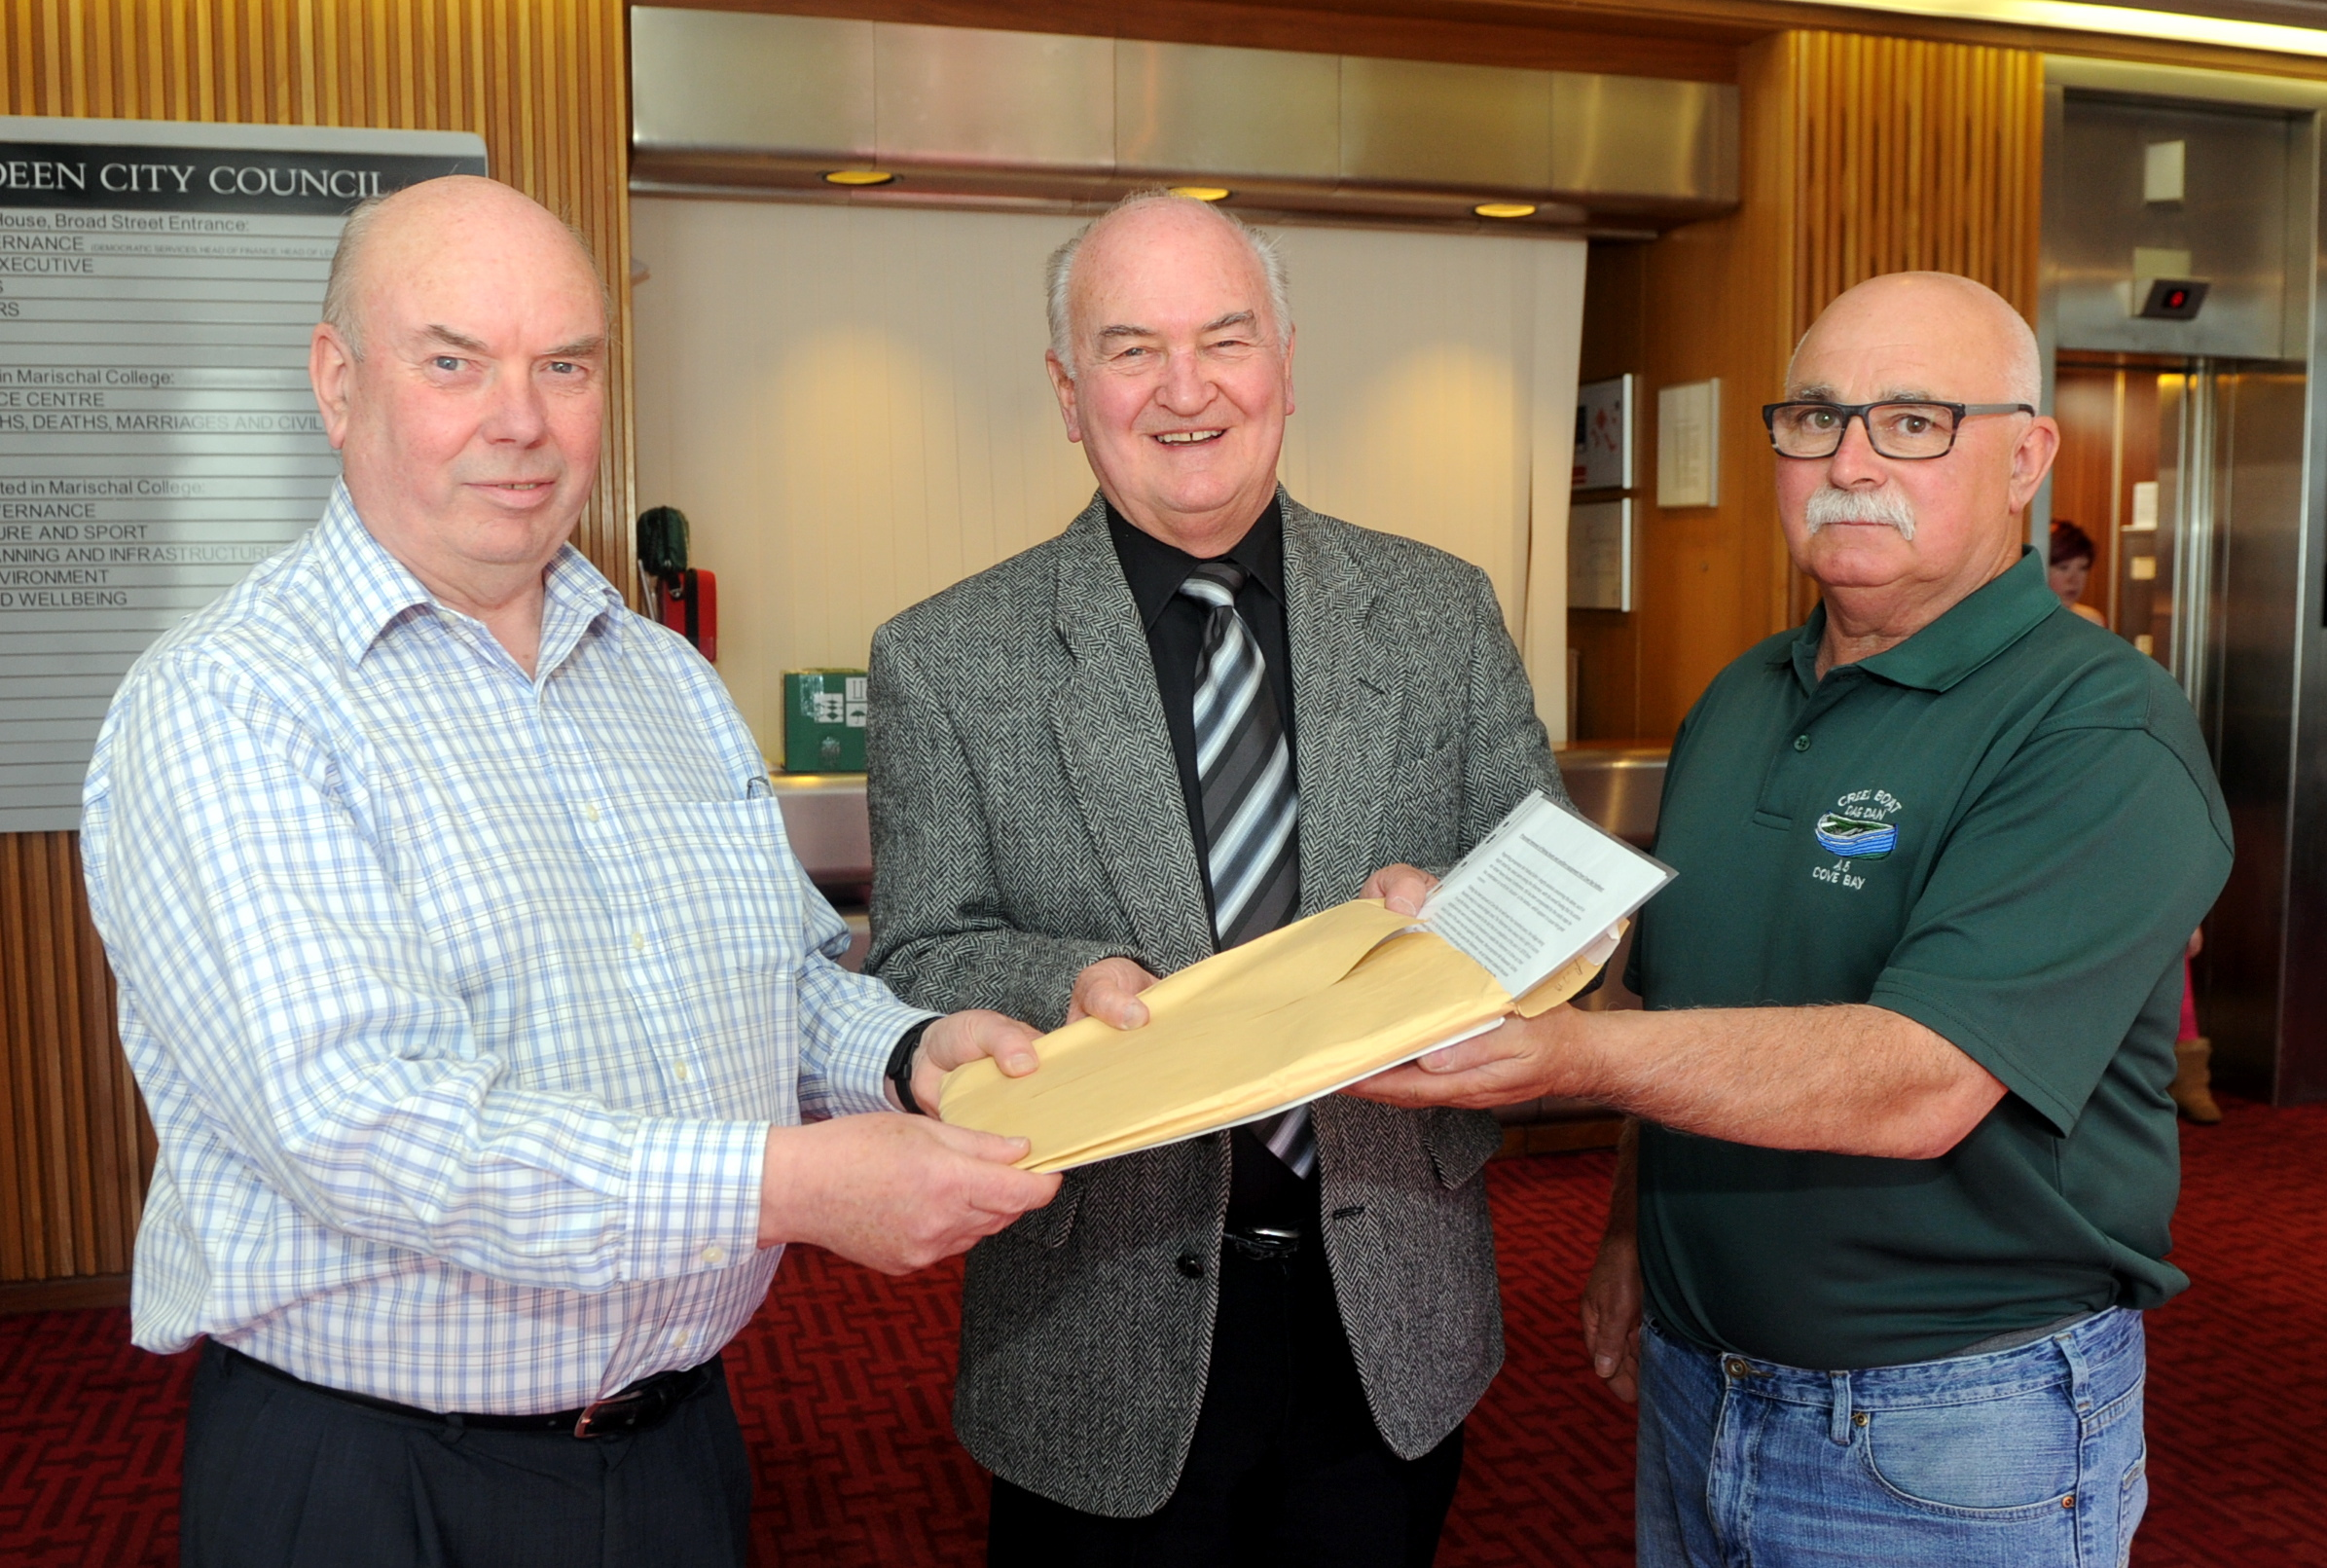 Jim Adam, left, chairman of Cove Fishermen's Association and George Skinner, right,  hand over a petition to Councillor Neil Cooney.